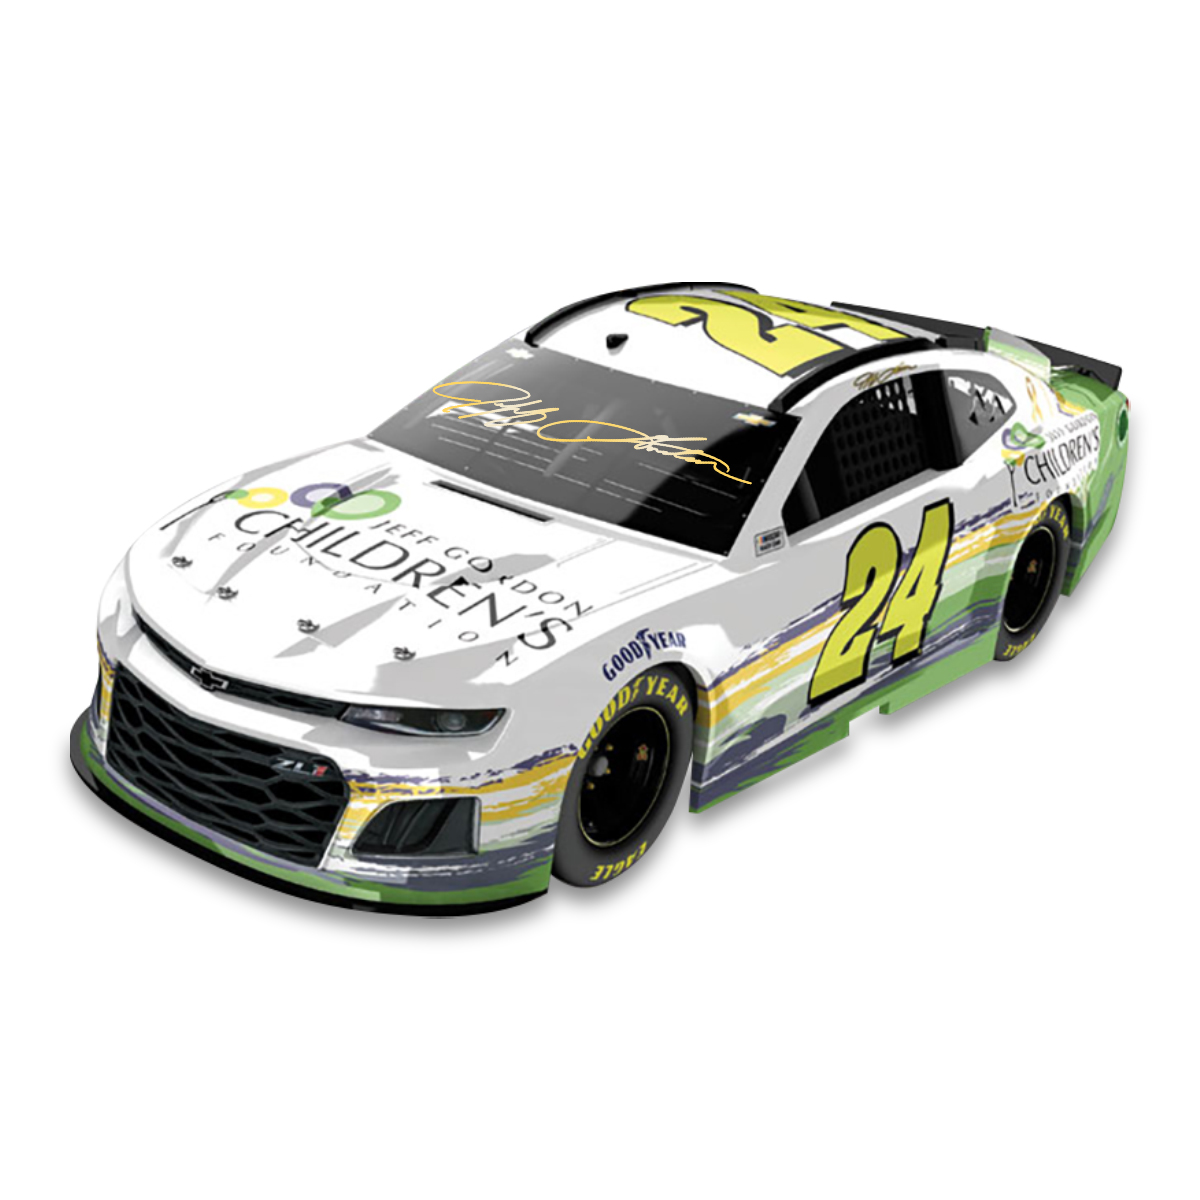 2019 Chevrolet Camaro Zl1: Autographed Jeff Gordon Children's Foundation 2019